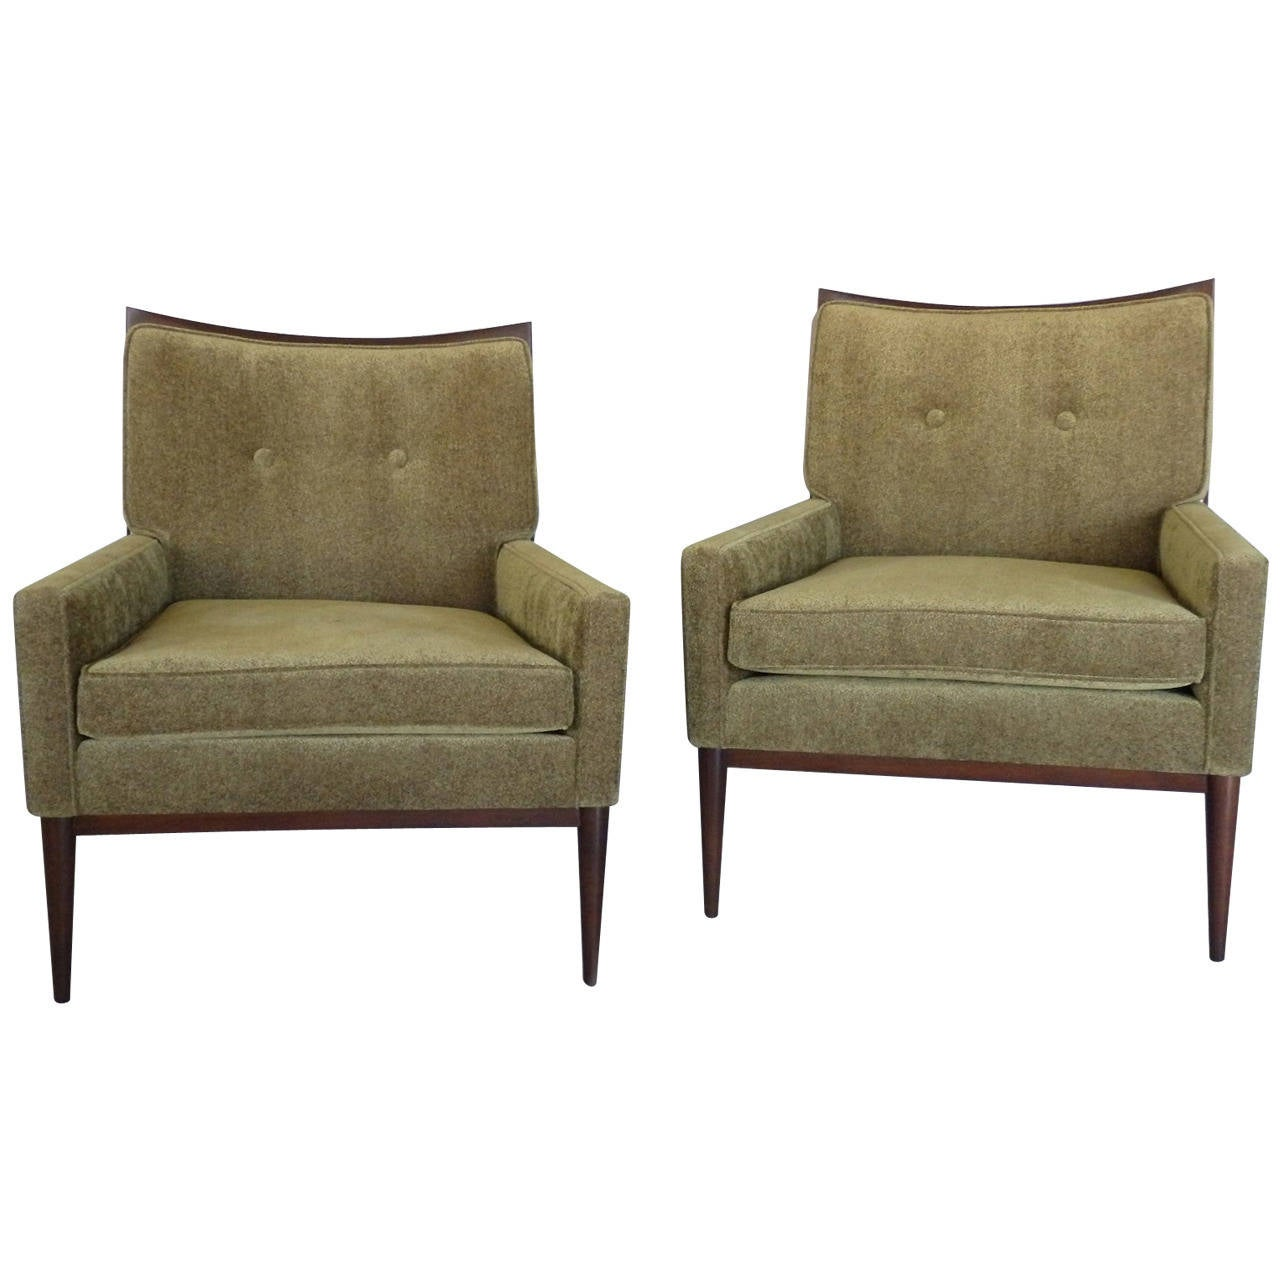 Pair of Paul McCobb  Lounge Chairs 1